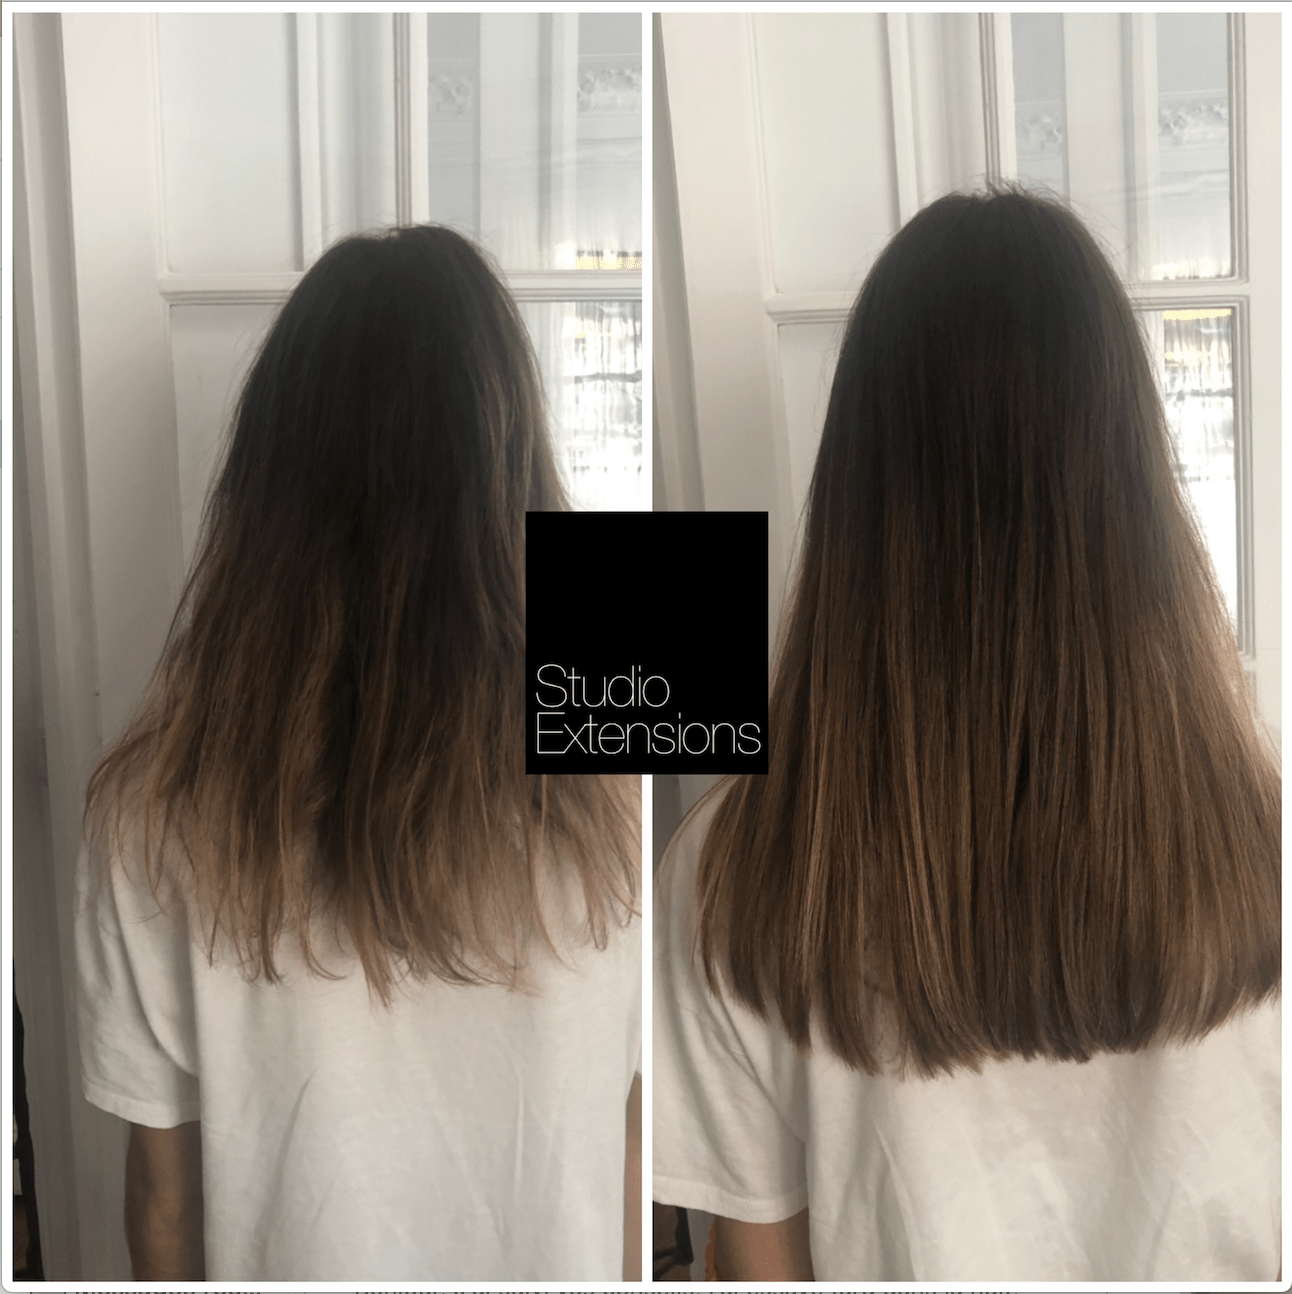 50 extensions ultrason Pose volume